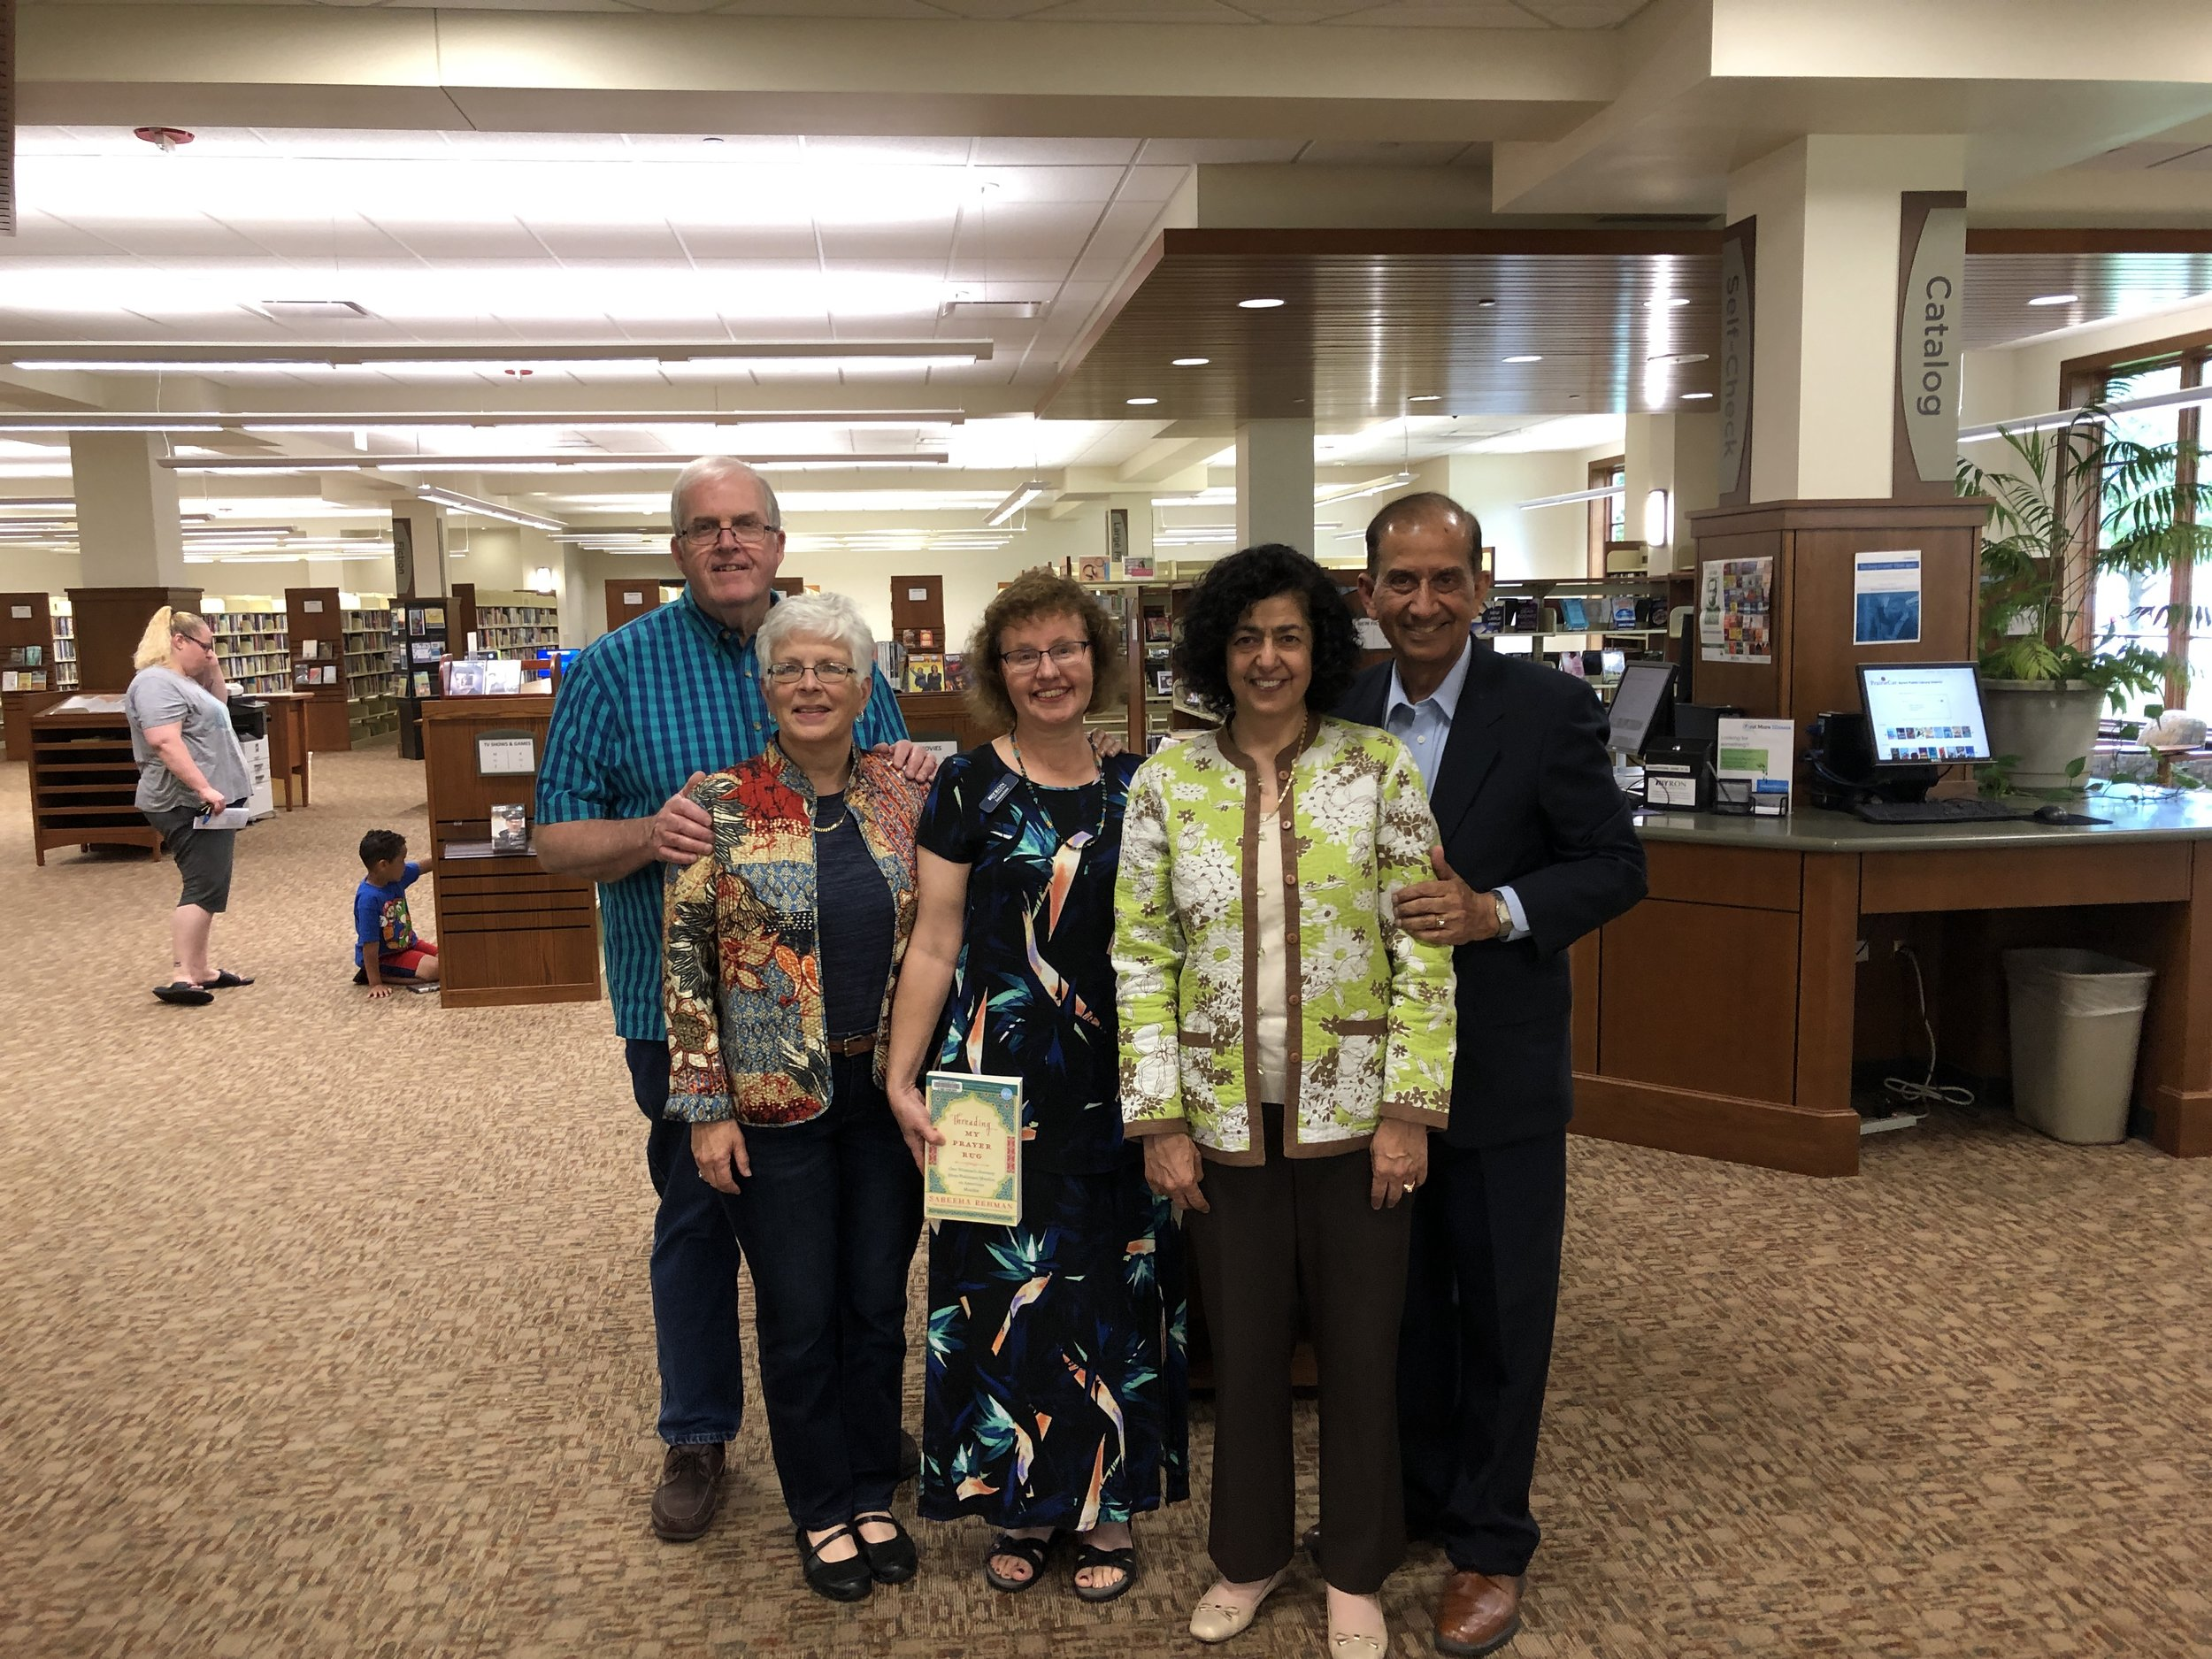 With Jeannine Hedges, Librarian, and our hosts Meredith and Brad Townsend